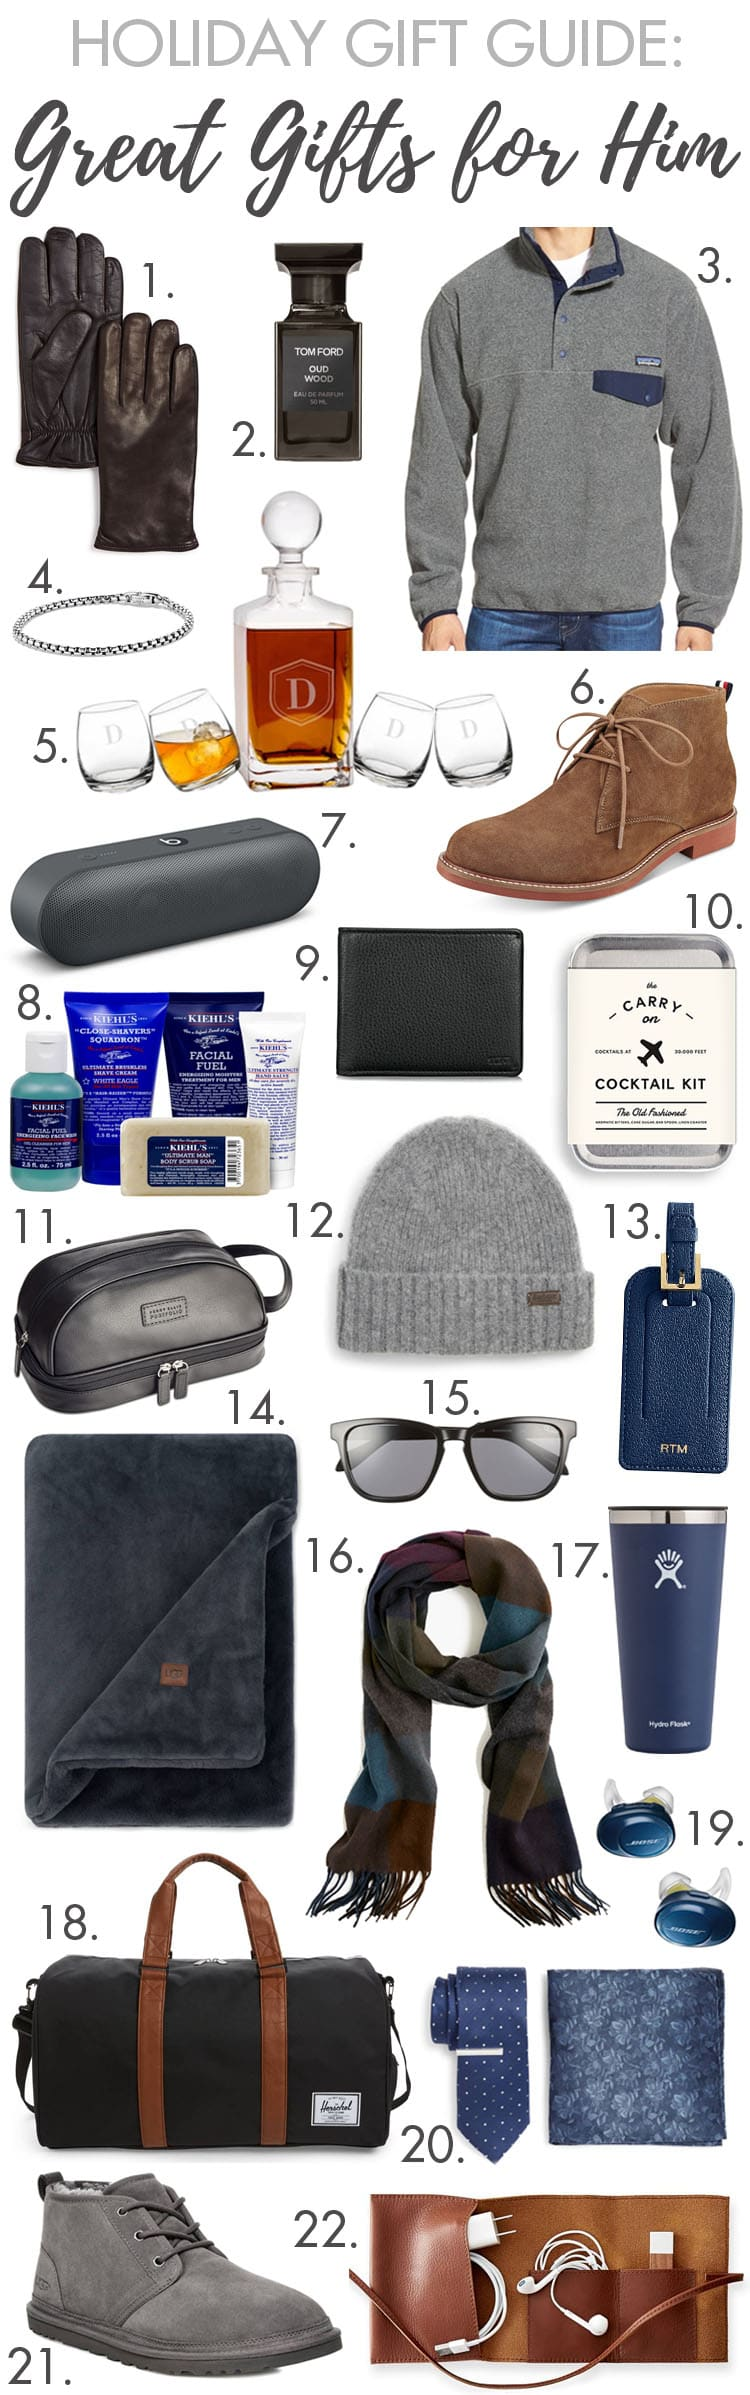 From $15 to $250, we have rounded up the best holiday gift ideas for men! #giftguide